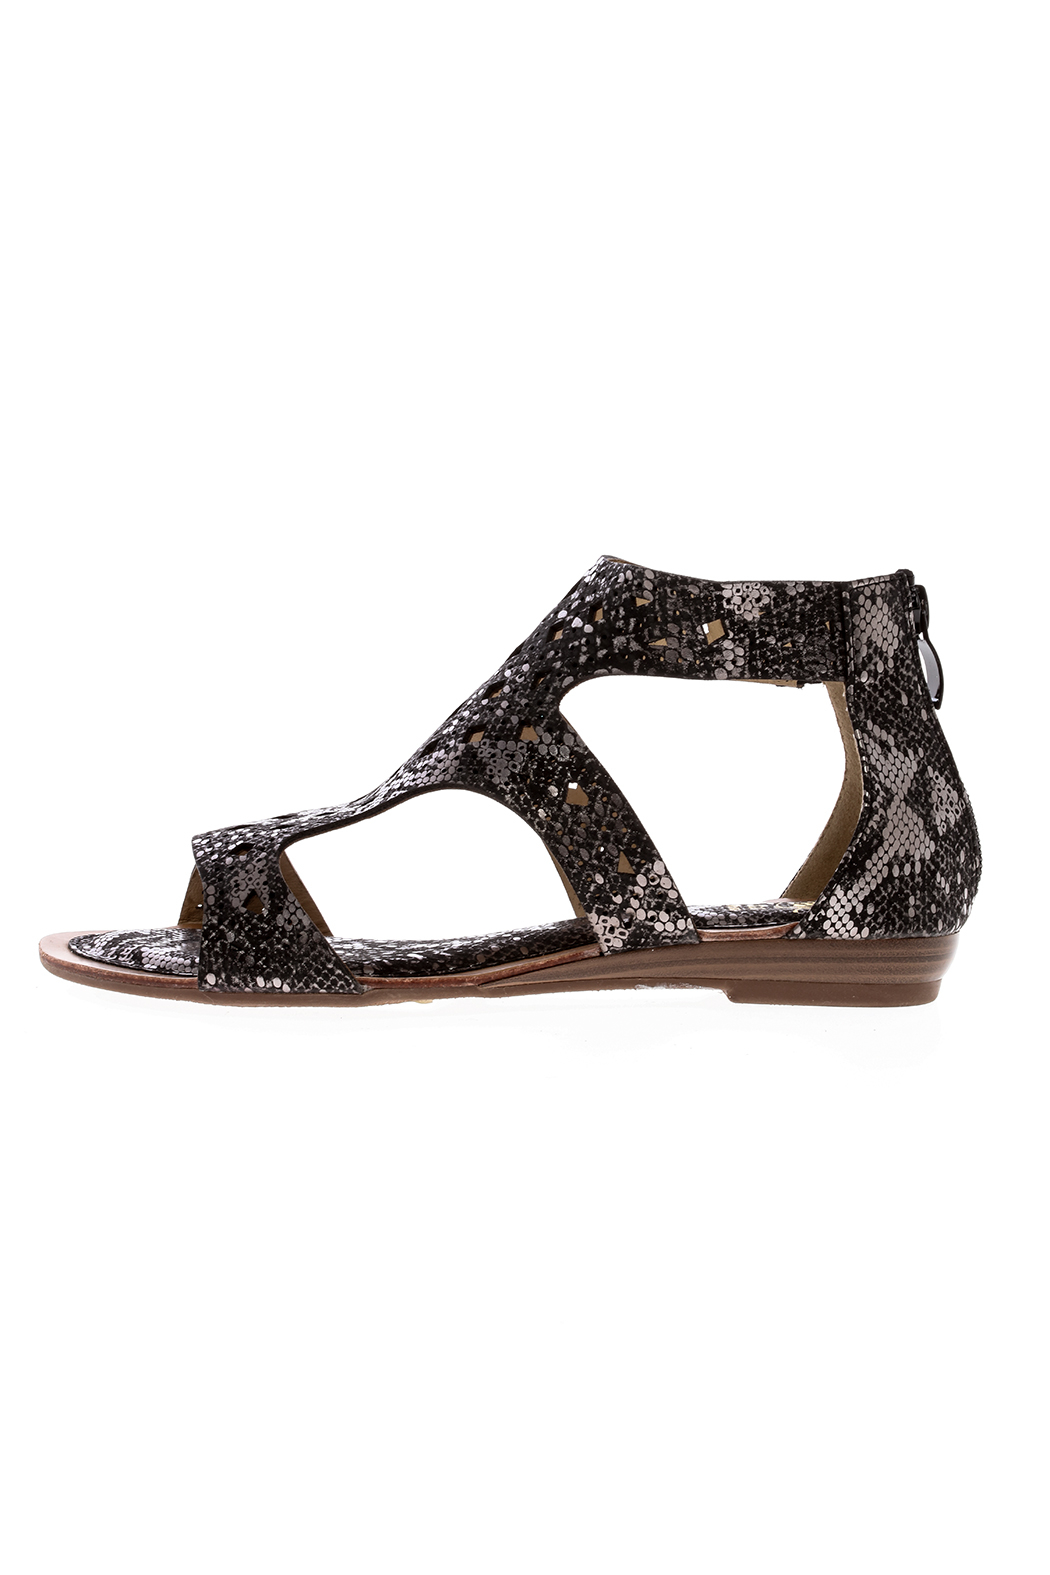 gc shoes Snake Skin Gladiator Sandal - Front Full Image